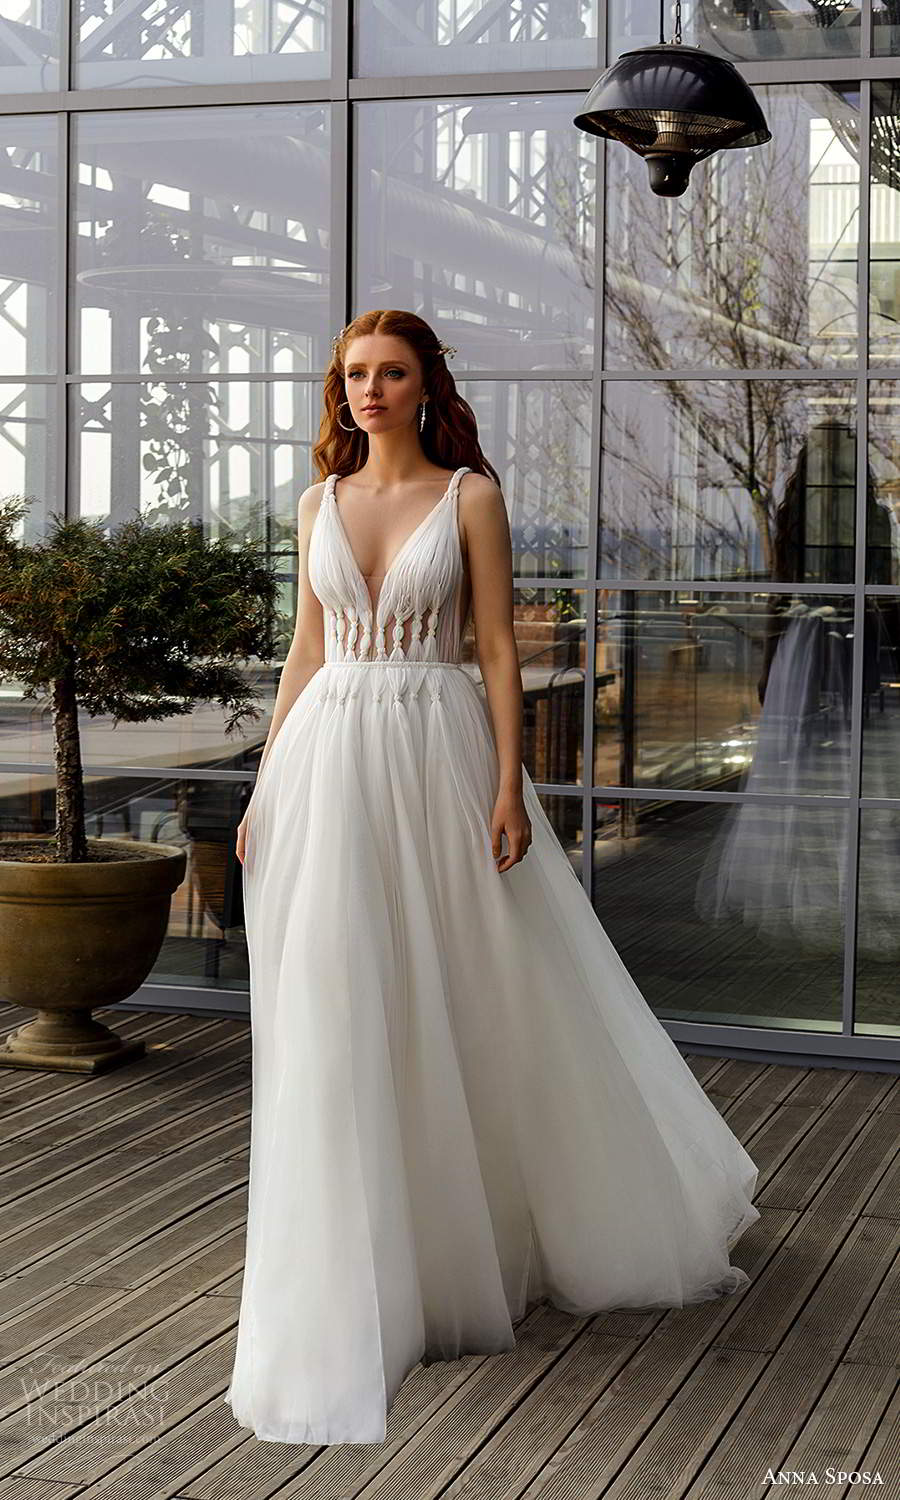 anna sposa 2021 boho bridal sleeveless straps plunging v neckline ruched bodice a line ball gown wedding dress (20) mv